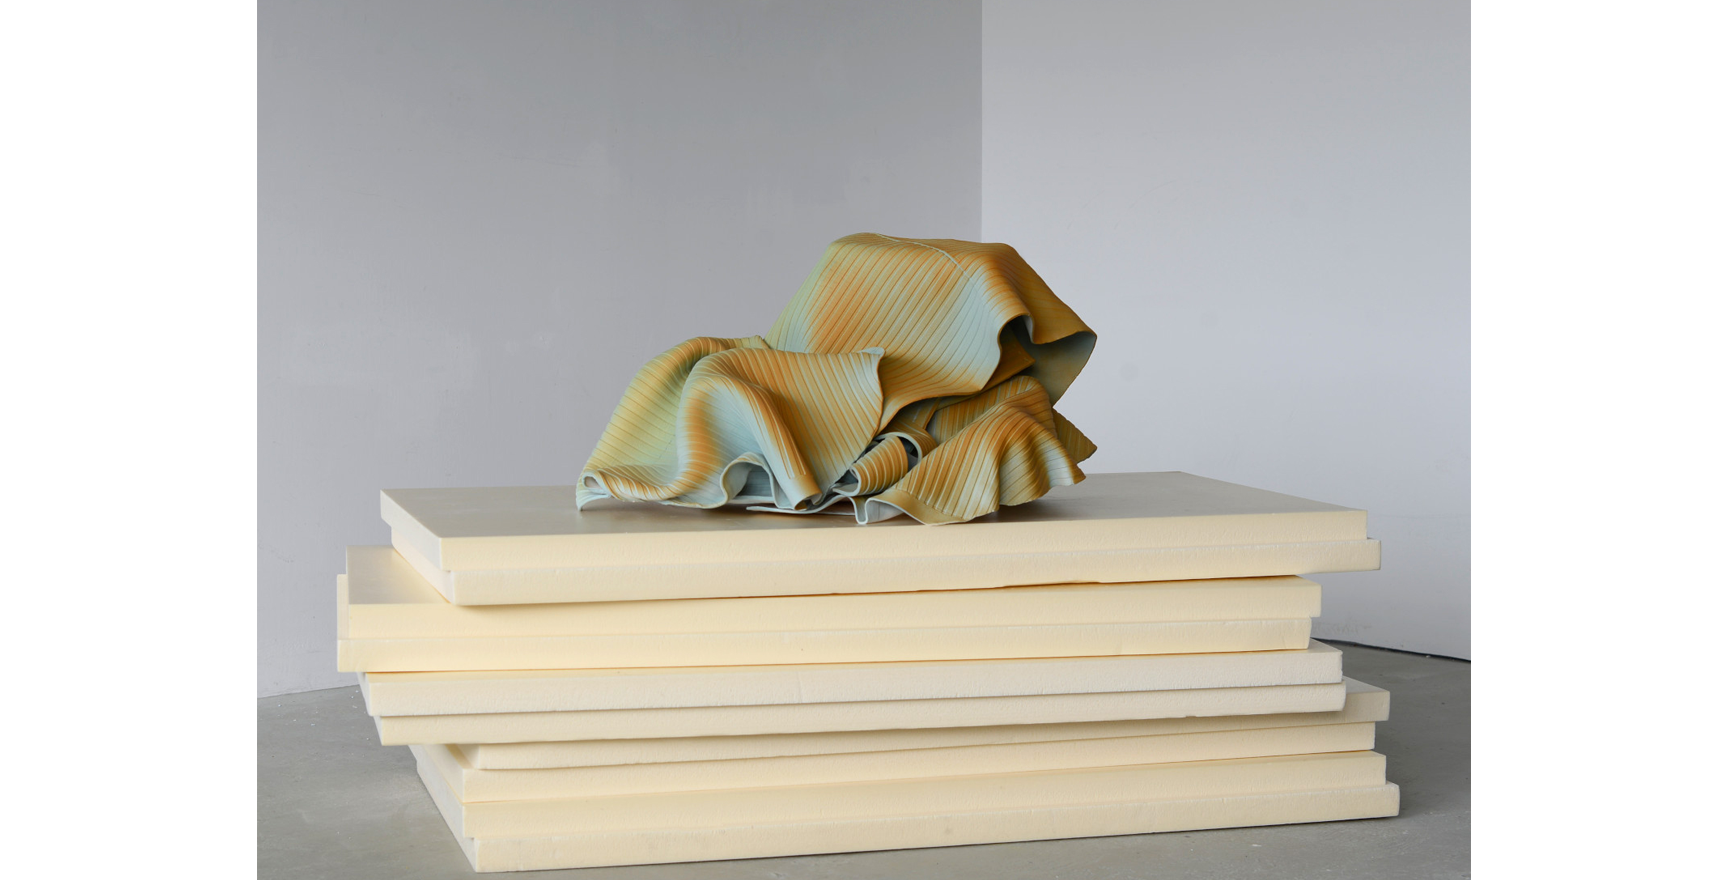 Vera Kox, Resting assured (shedding), 2020, ceramic, insulation panels, 80x126x61cm